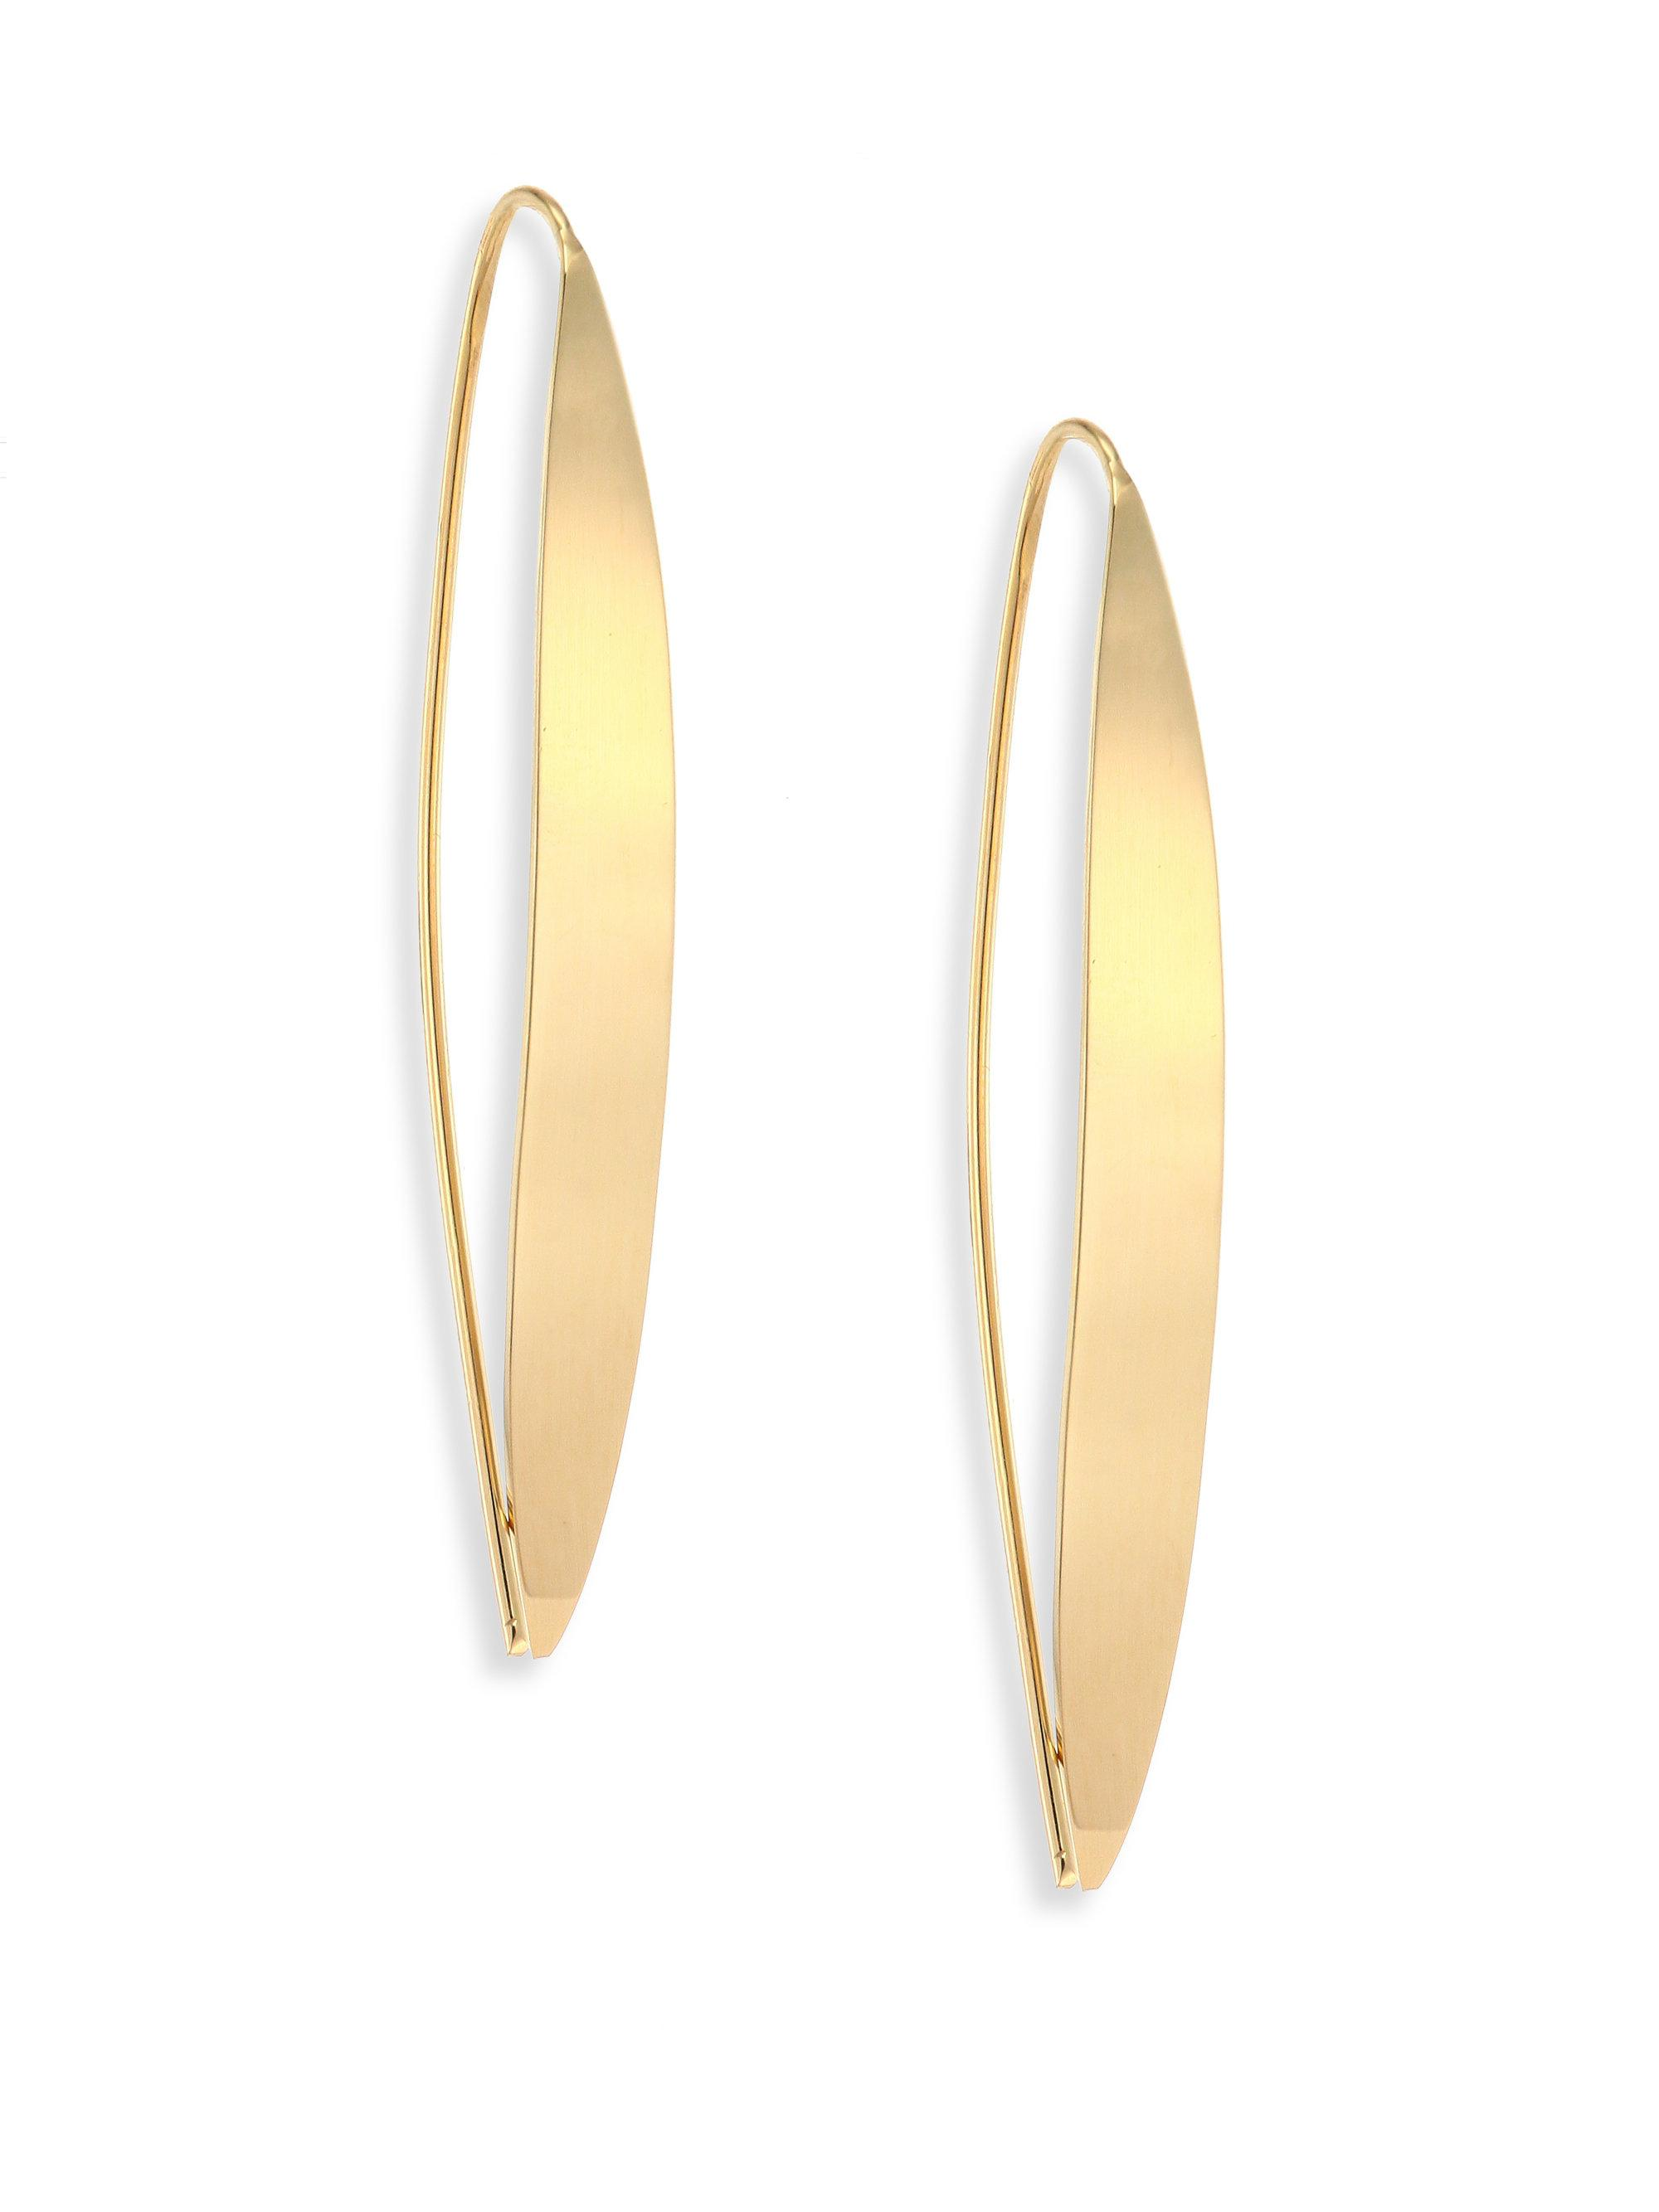 Lana Jewelry Small Gloss 14K Gold Hoop Earrings UKaAeX